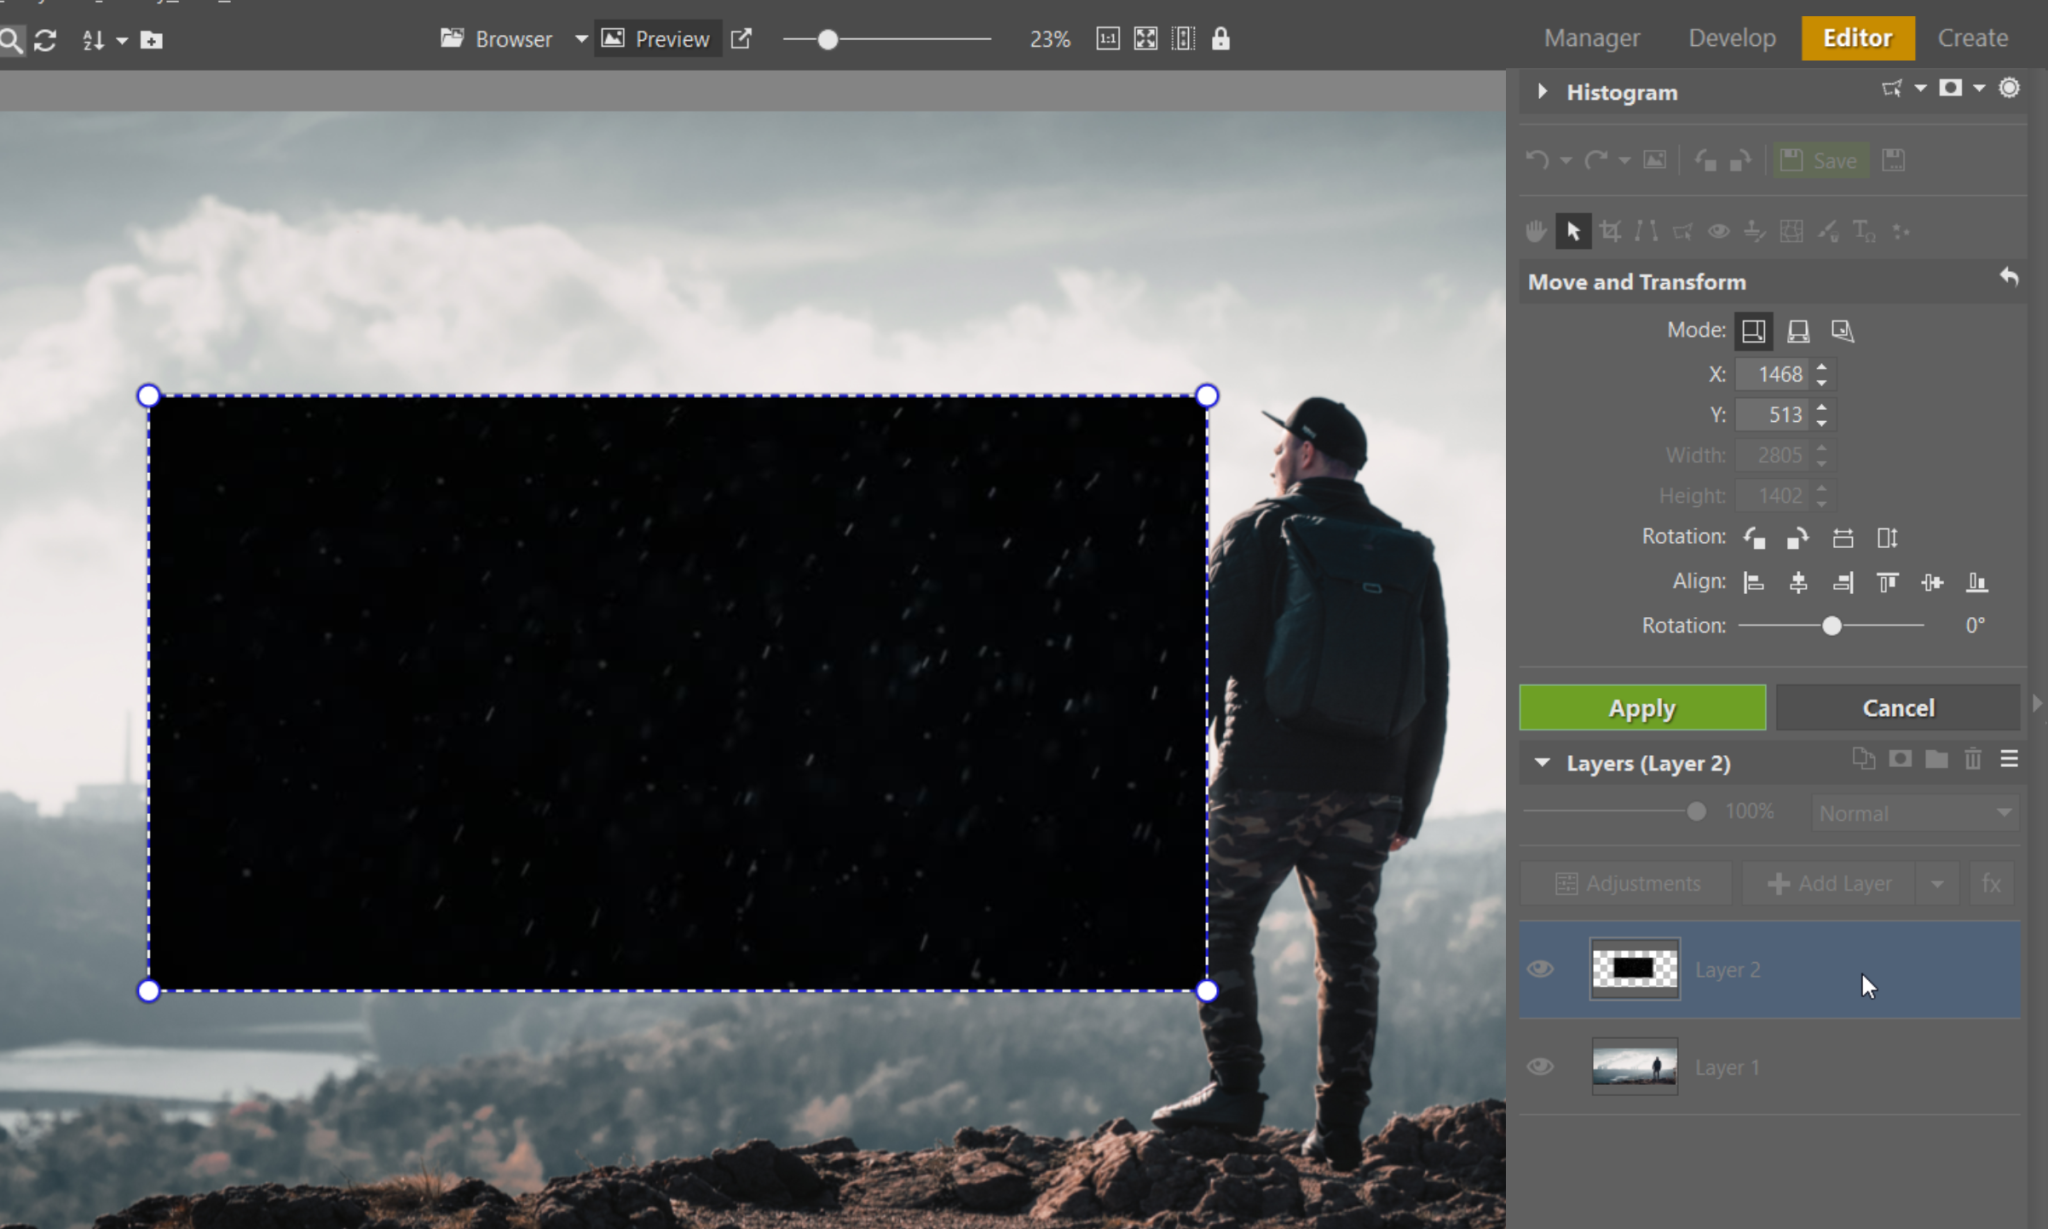 How to Add Snow to Your Photos: It's Easy With Layers - adjusting new layer